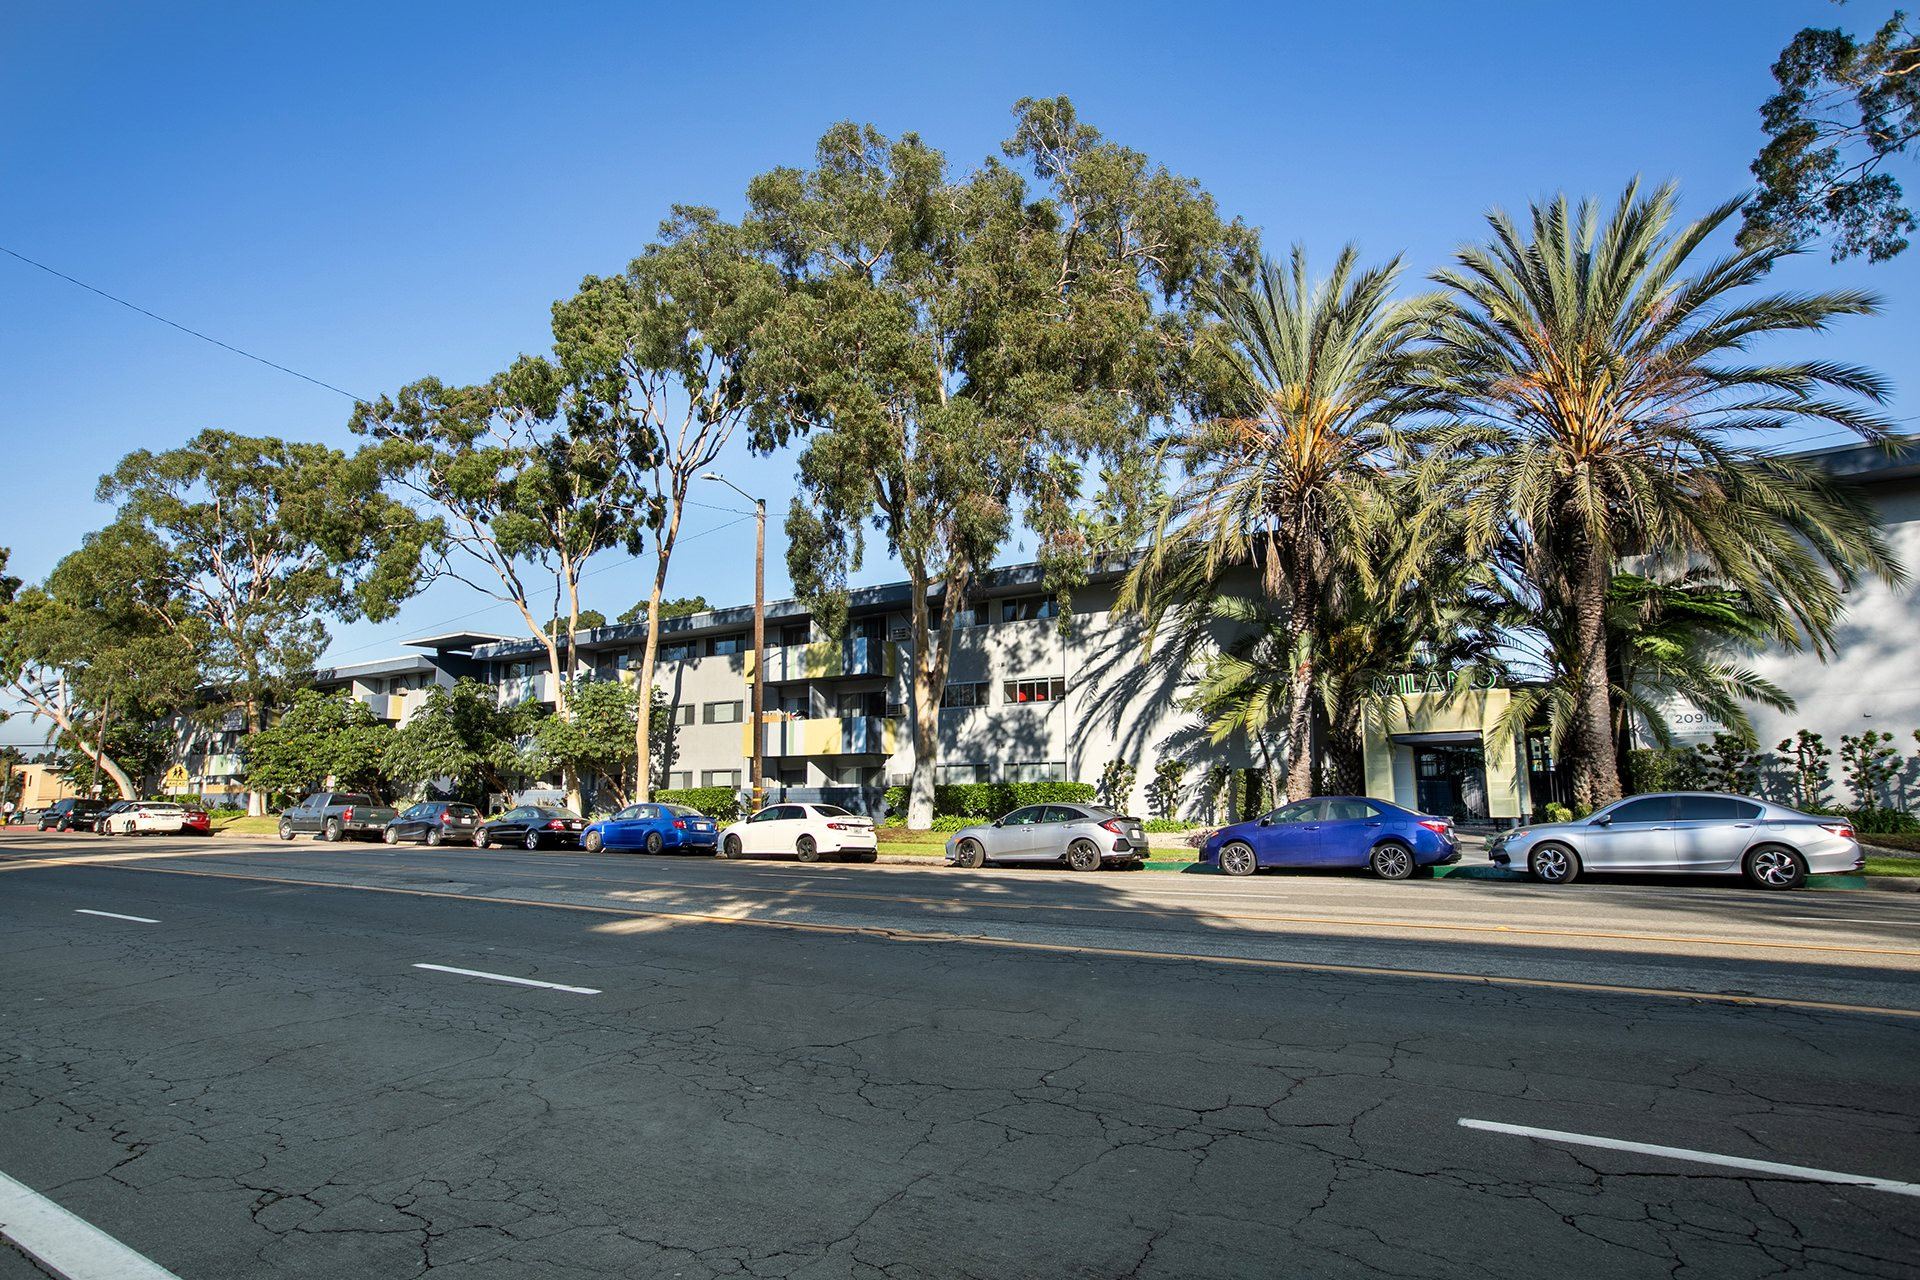 Torrance, CA Apartments - Exterior View of Milano Apartment Building Surrounded By Lush Landscaping